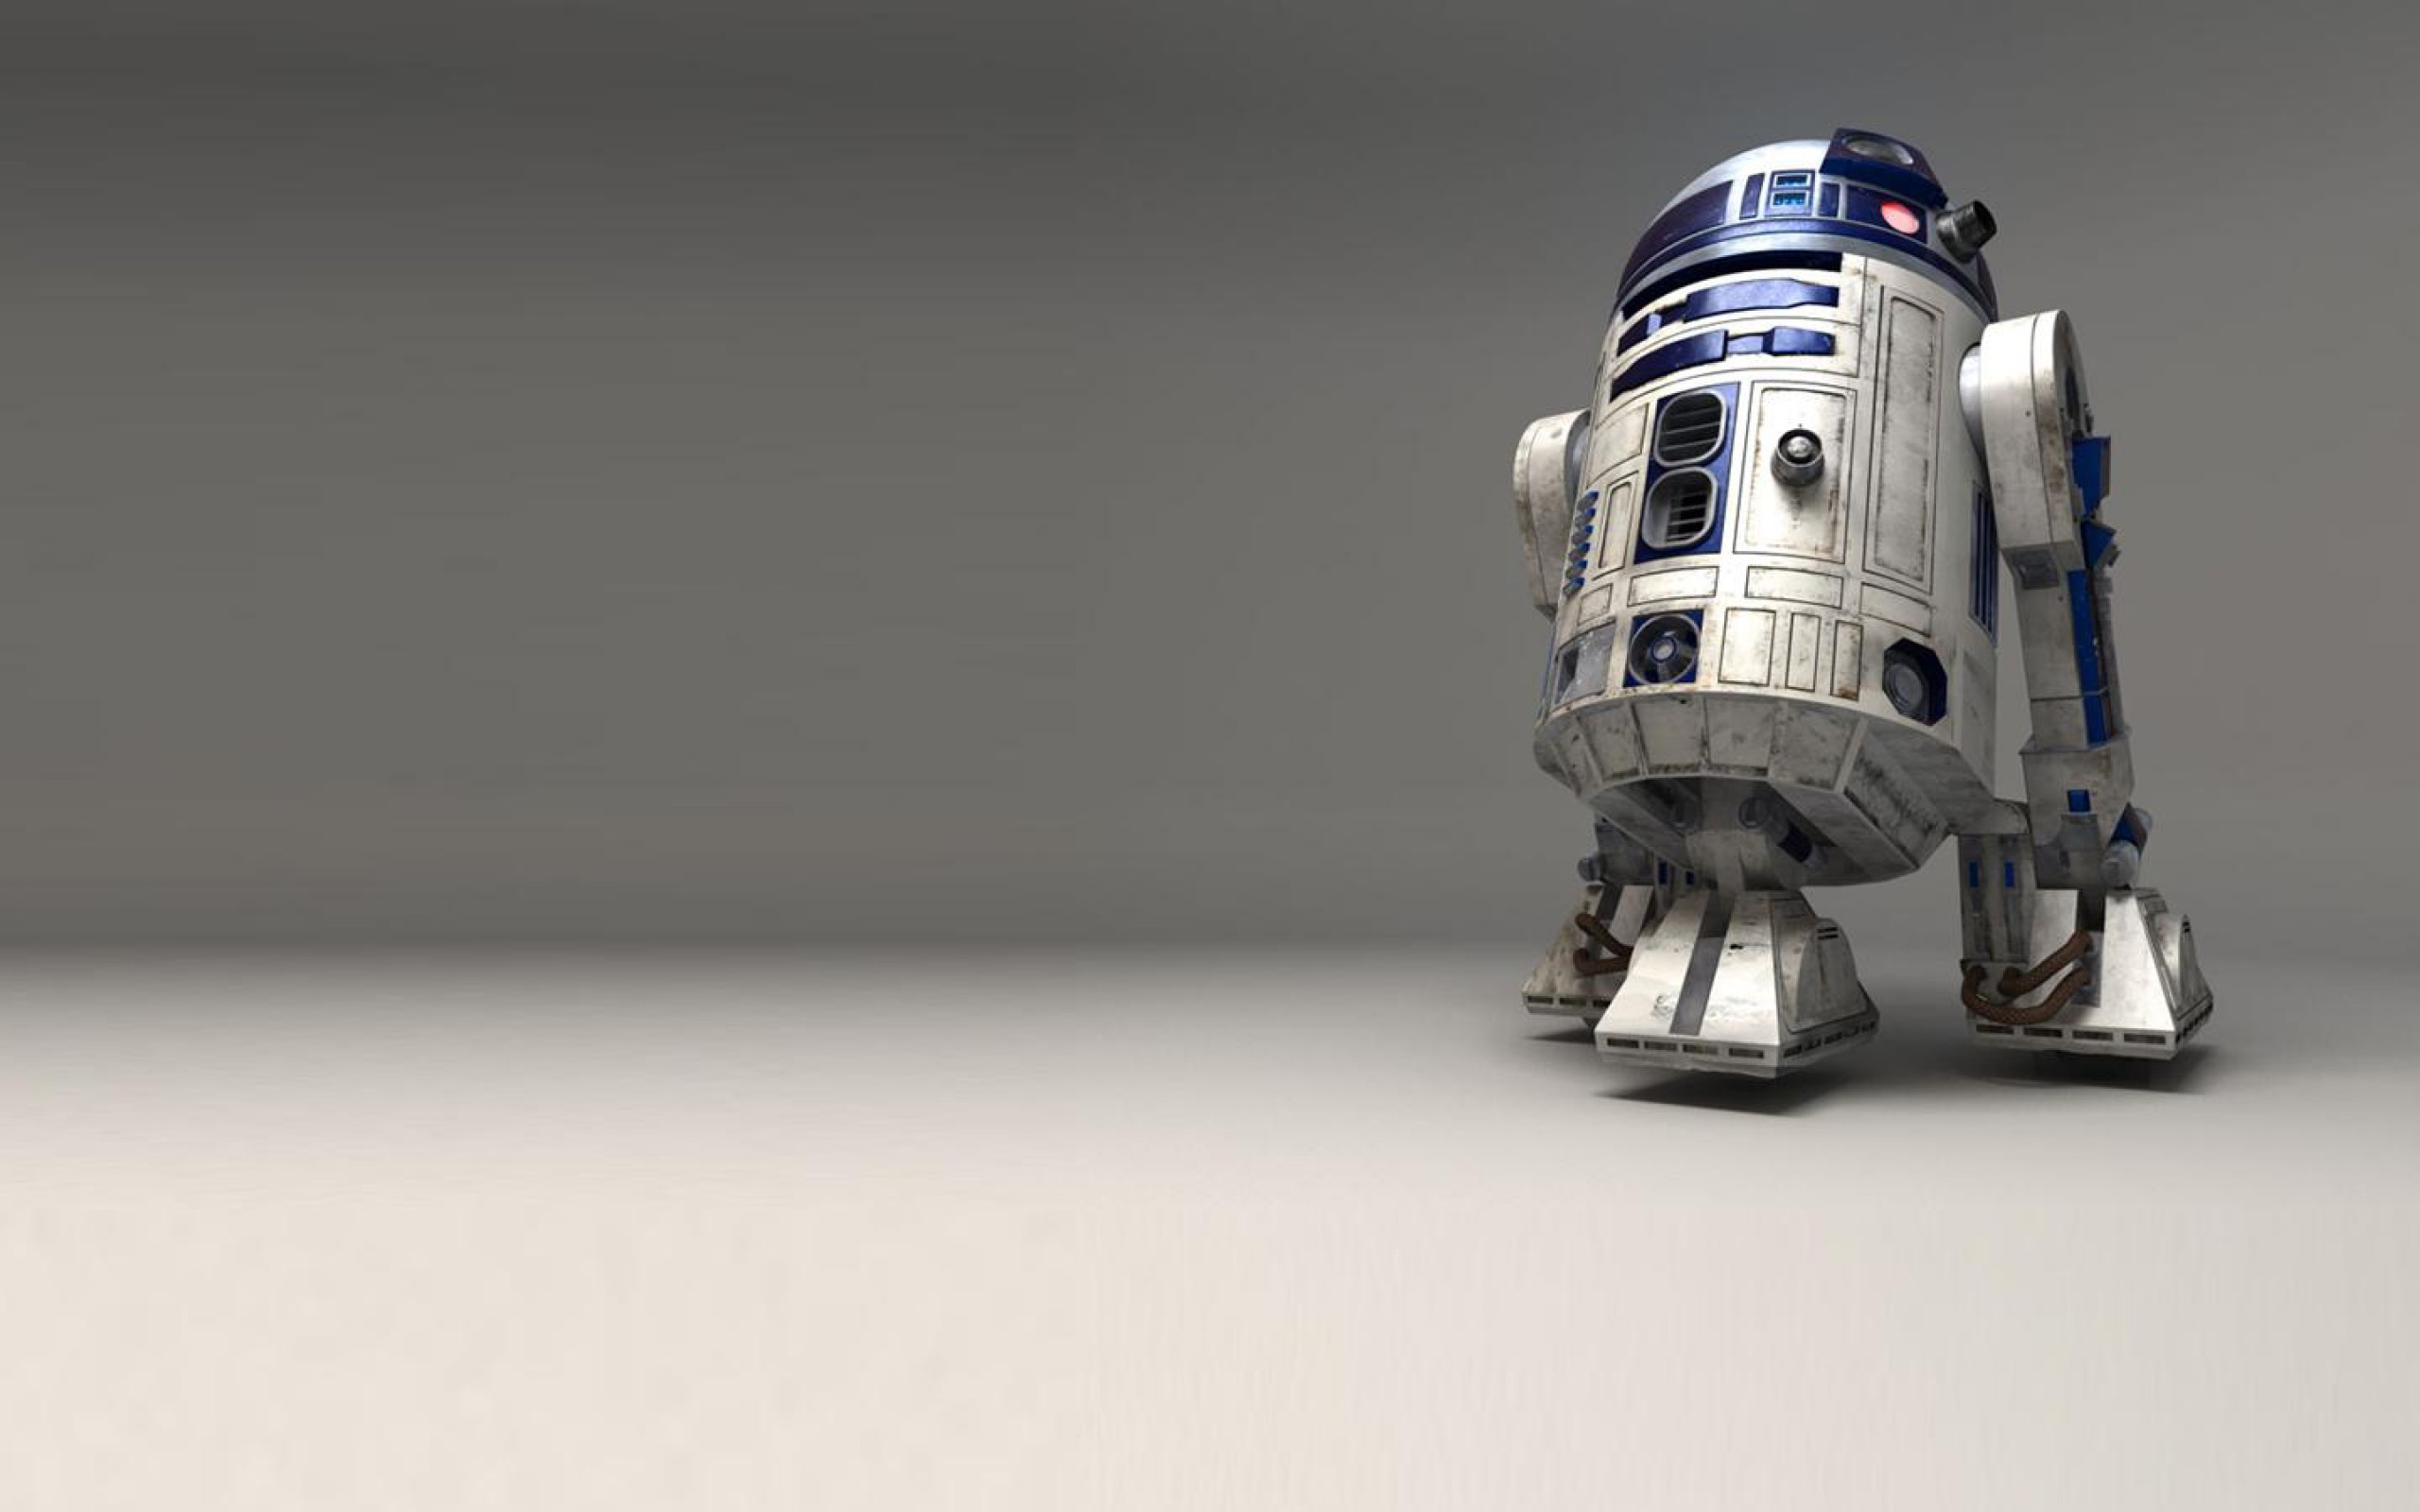 HQ RES Wallpapers of Star Wars HD